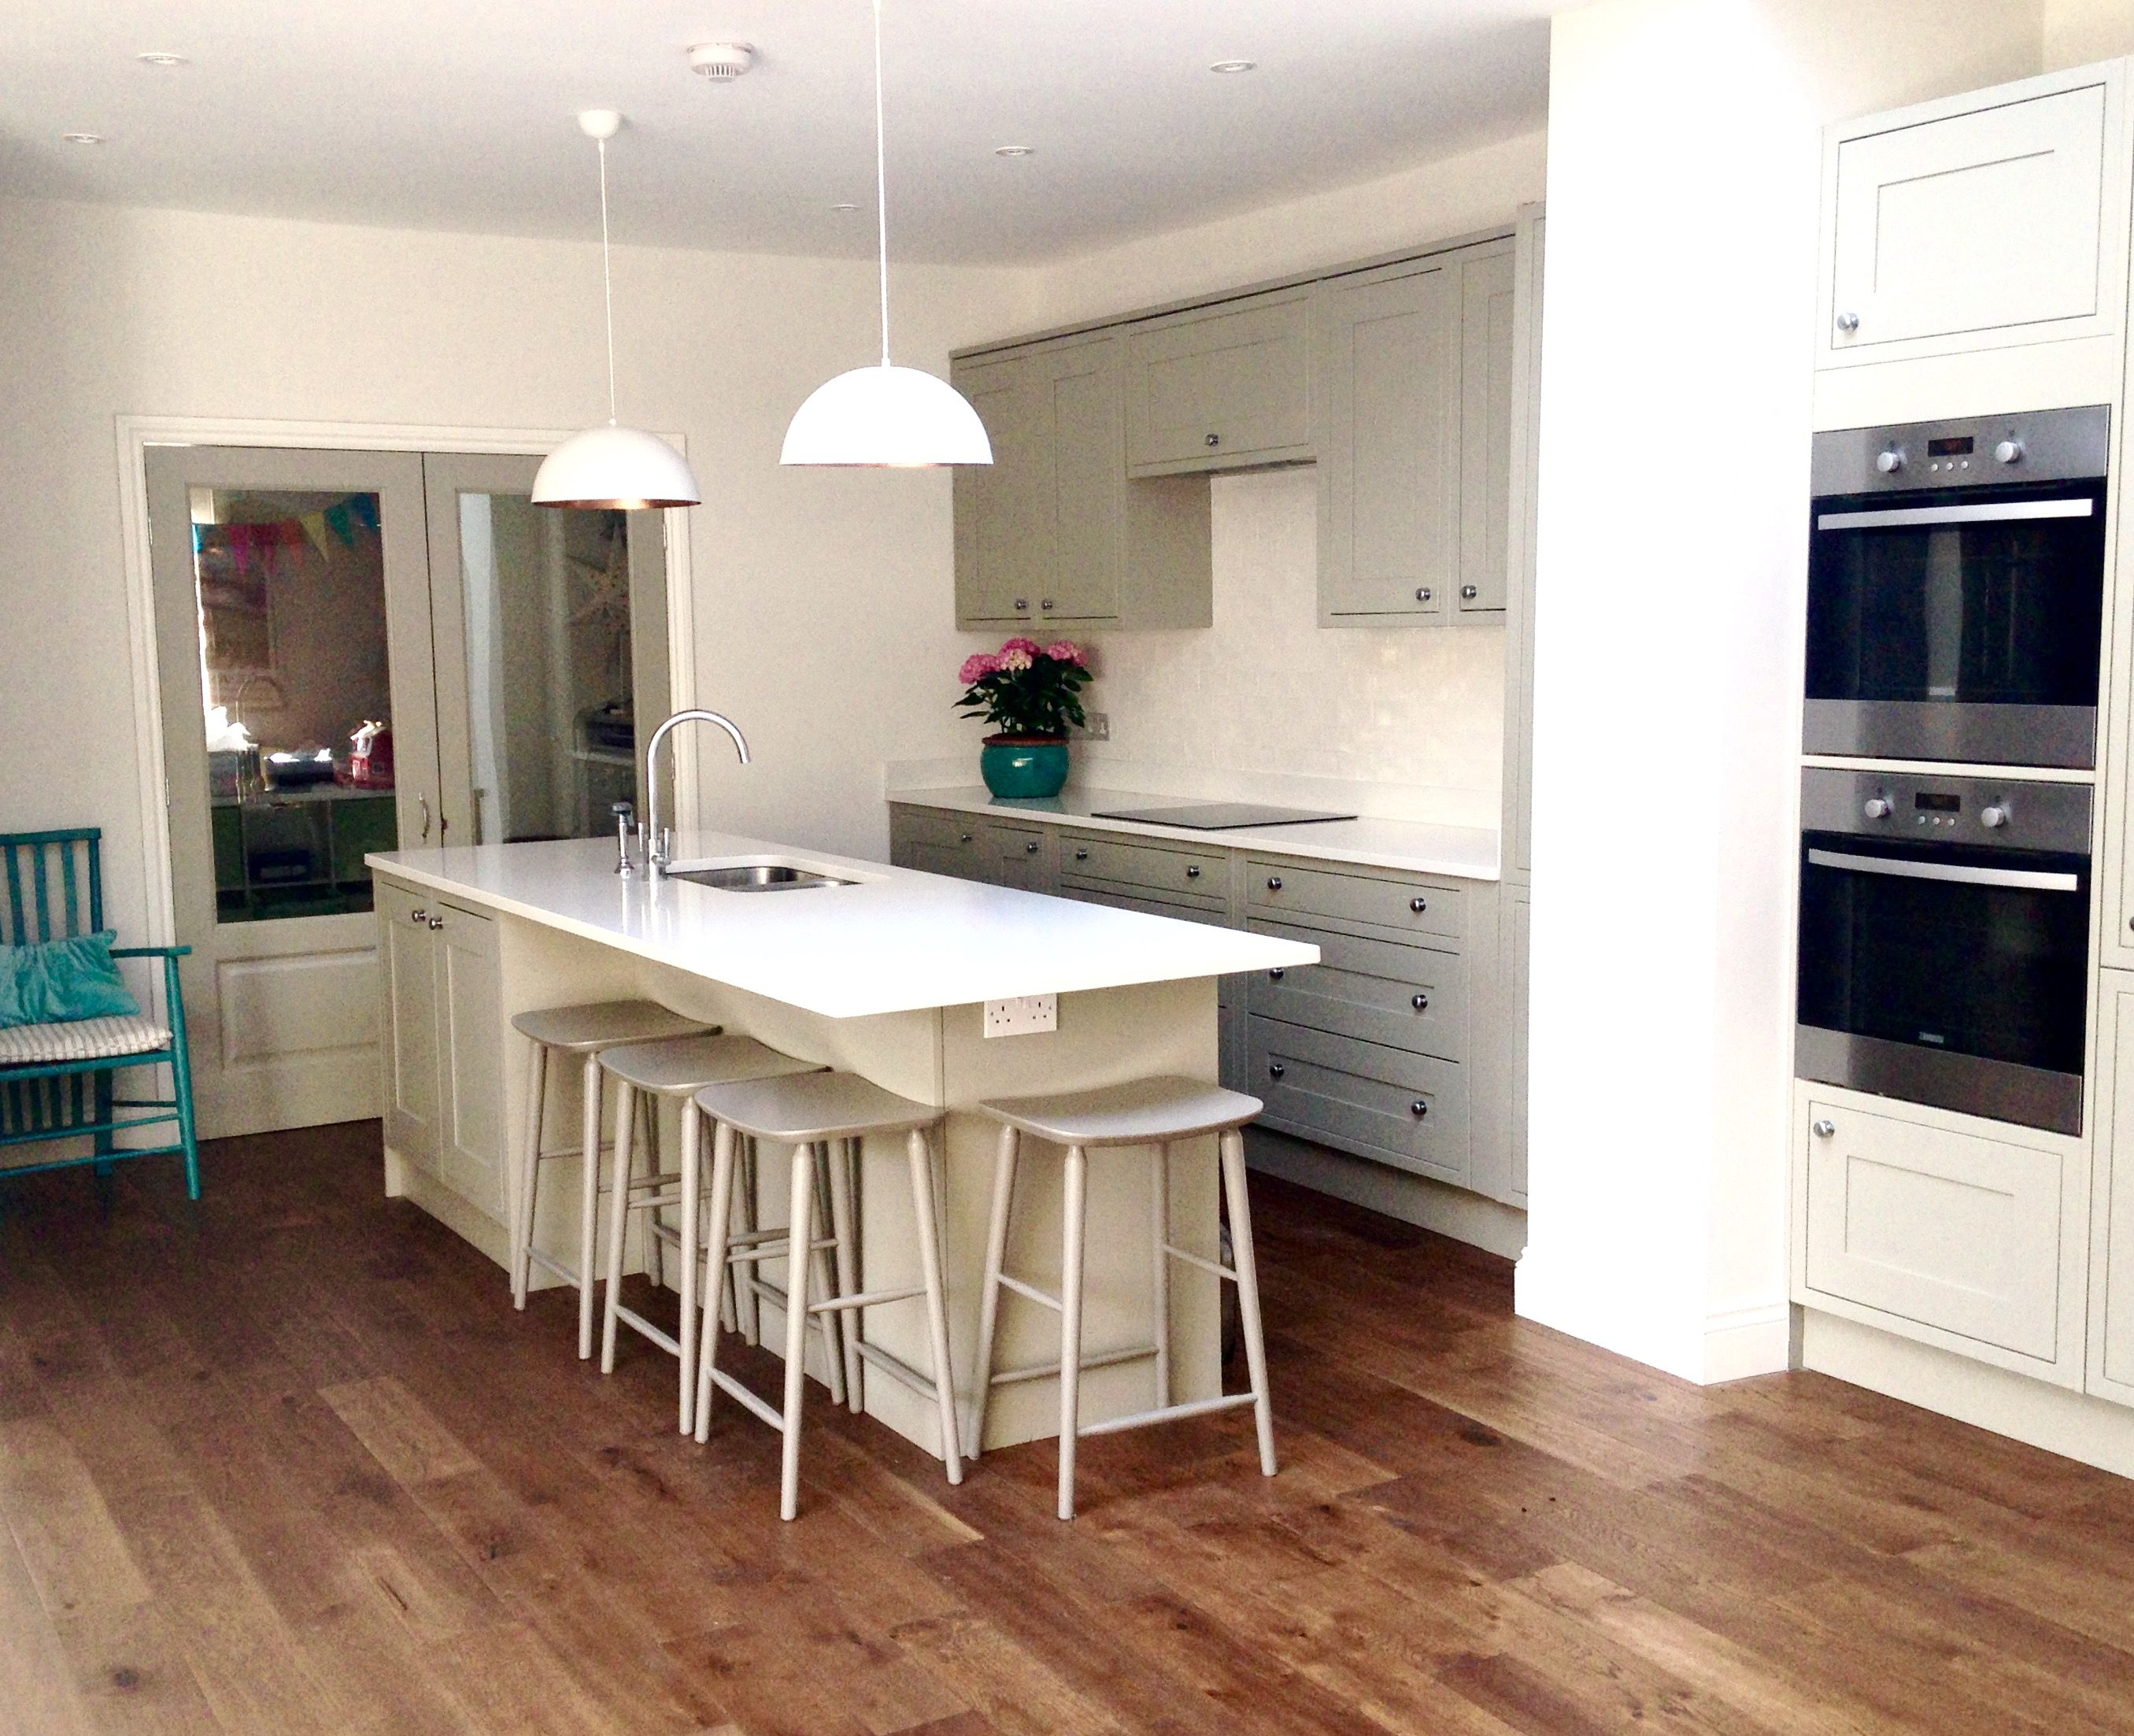 Kitchen units are from Wickes Heritage Grey. They are a